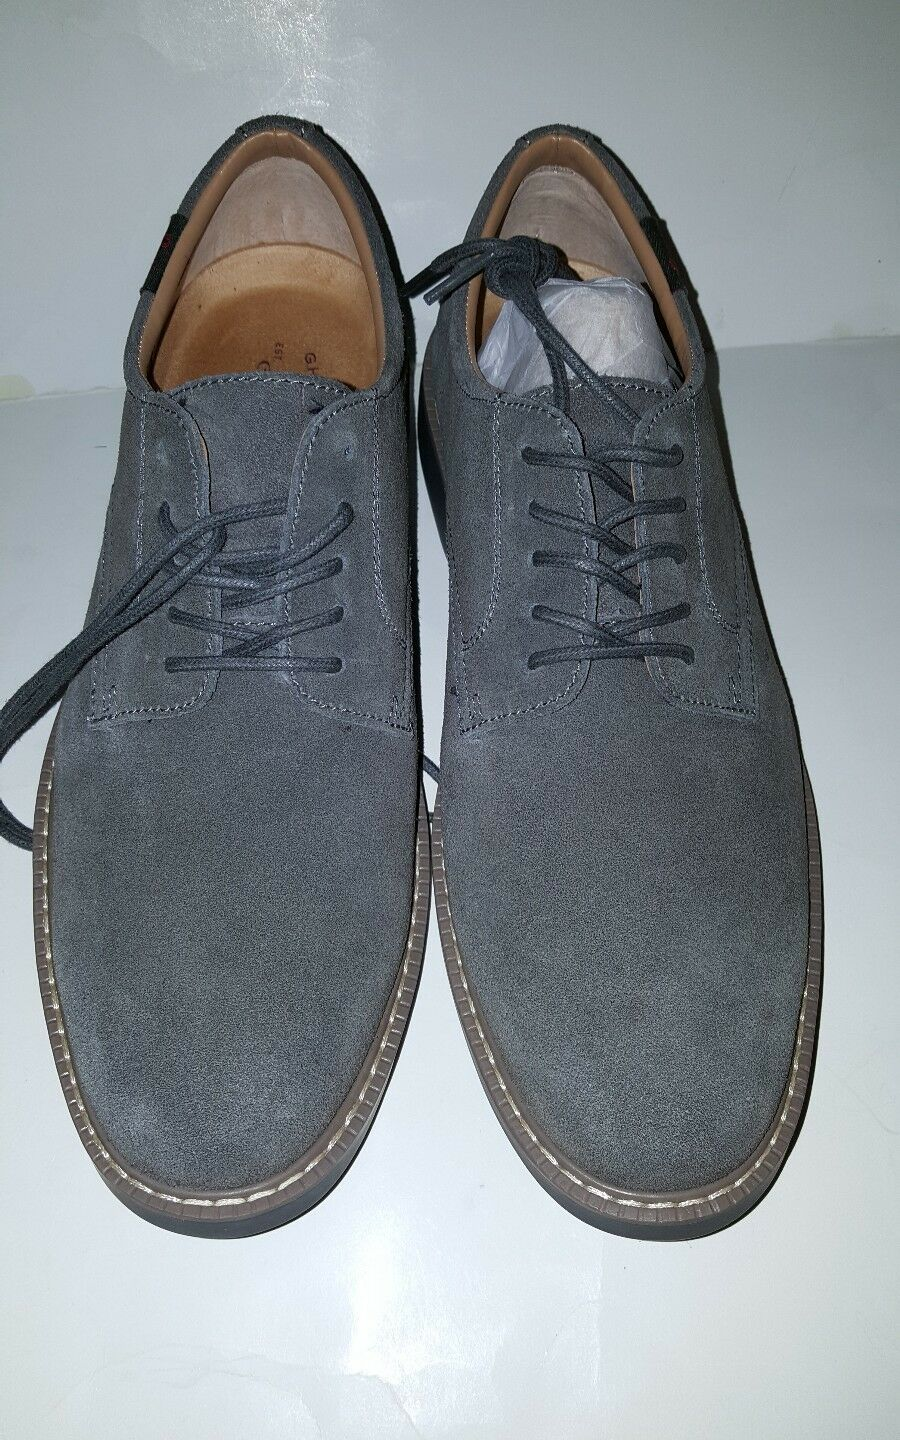 GH BASS PASADENA LEATHER/ MEN'S OXFORD SHOES; LEATHER/ PASADENA SUEDE/ GREY/00261915010 890a93